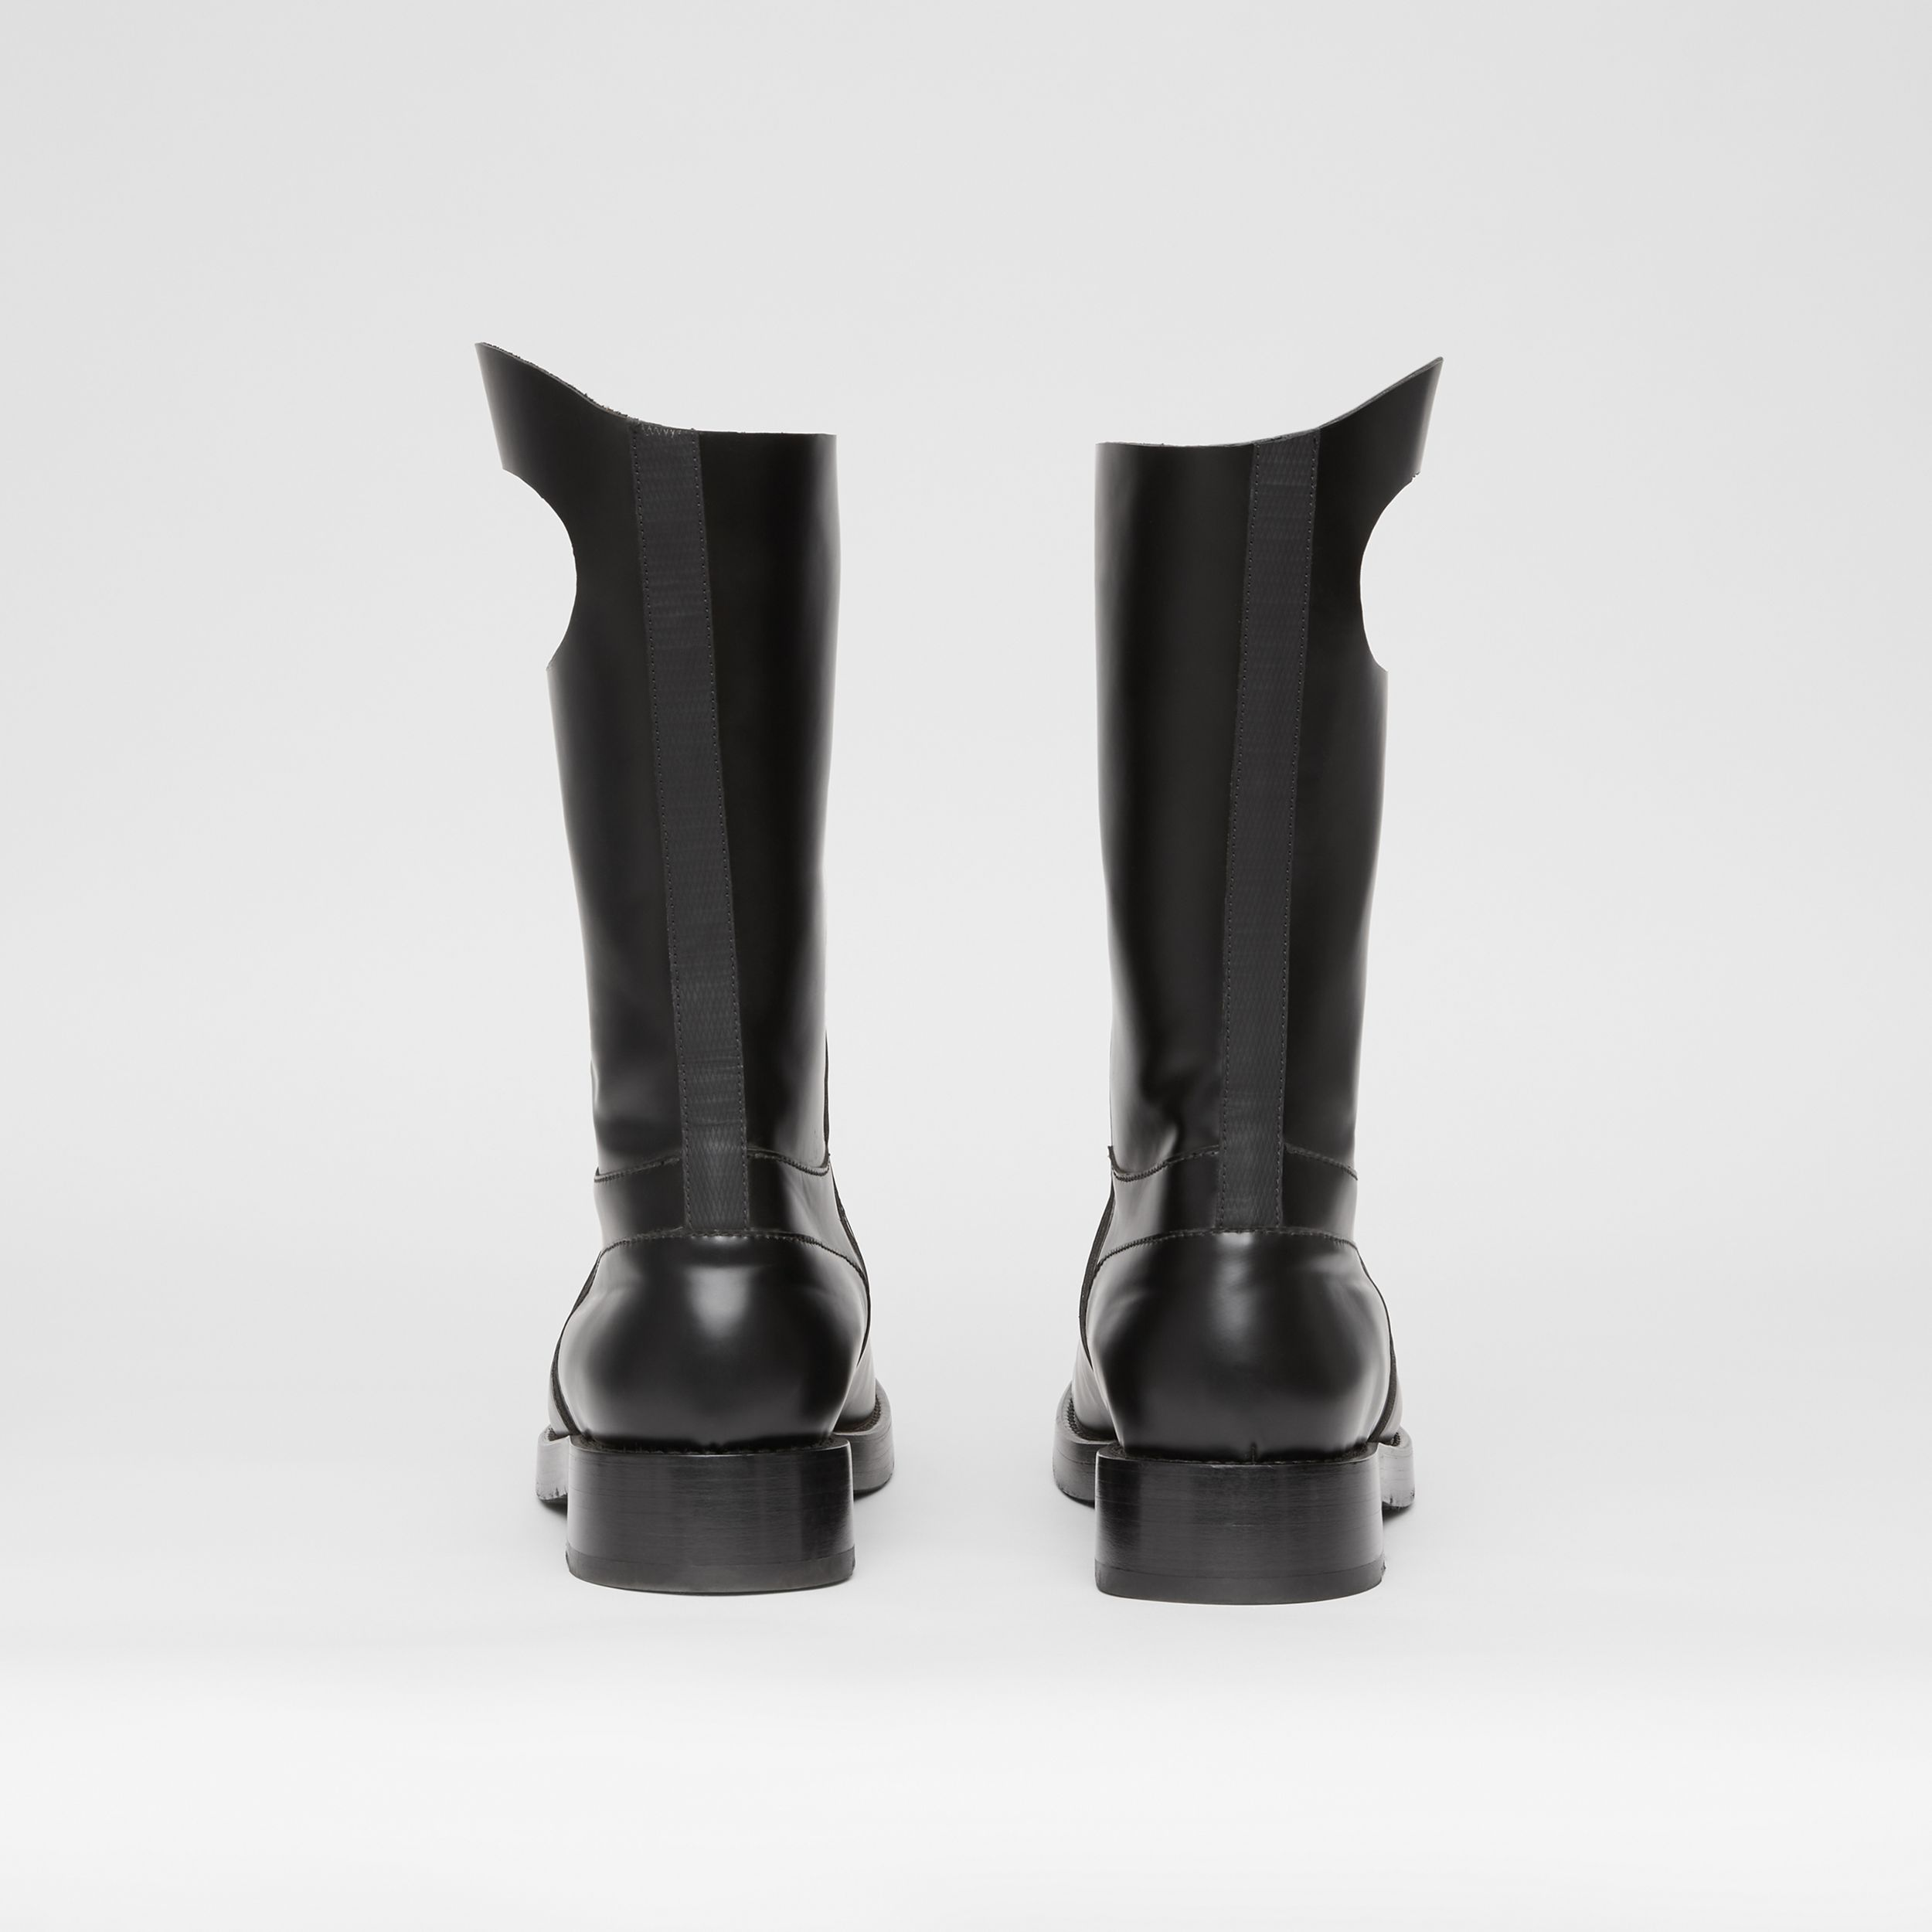 Porthole Detail Panelled Leather Boots in Black - Men | Burberry United Kingdom - 4